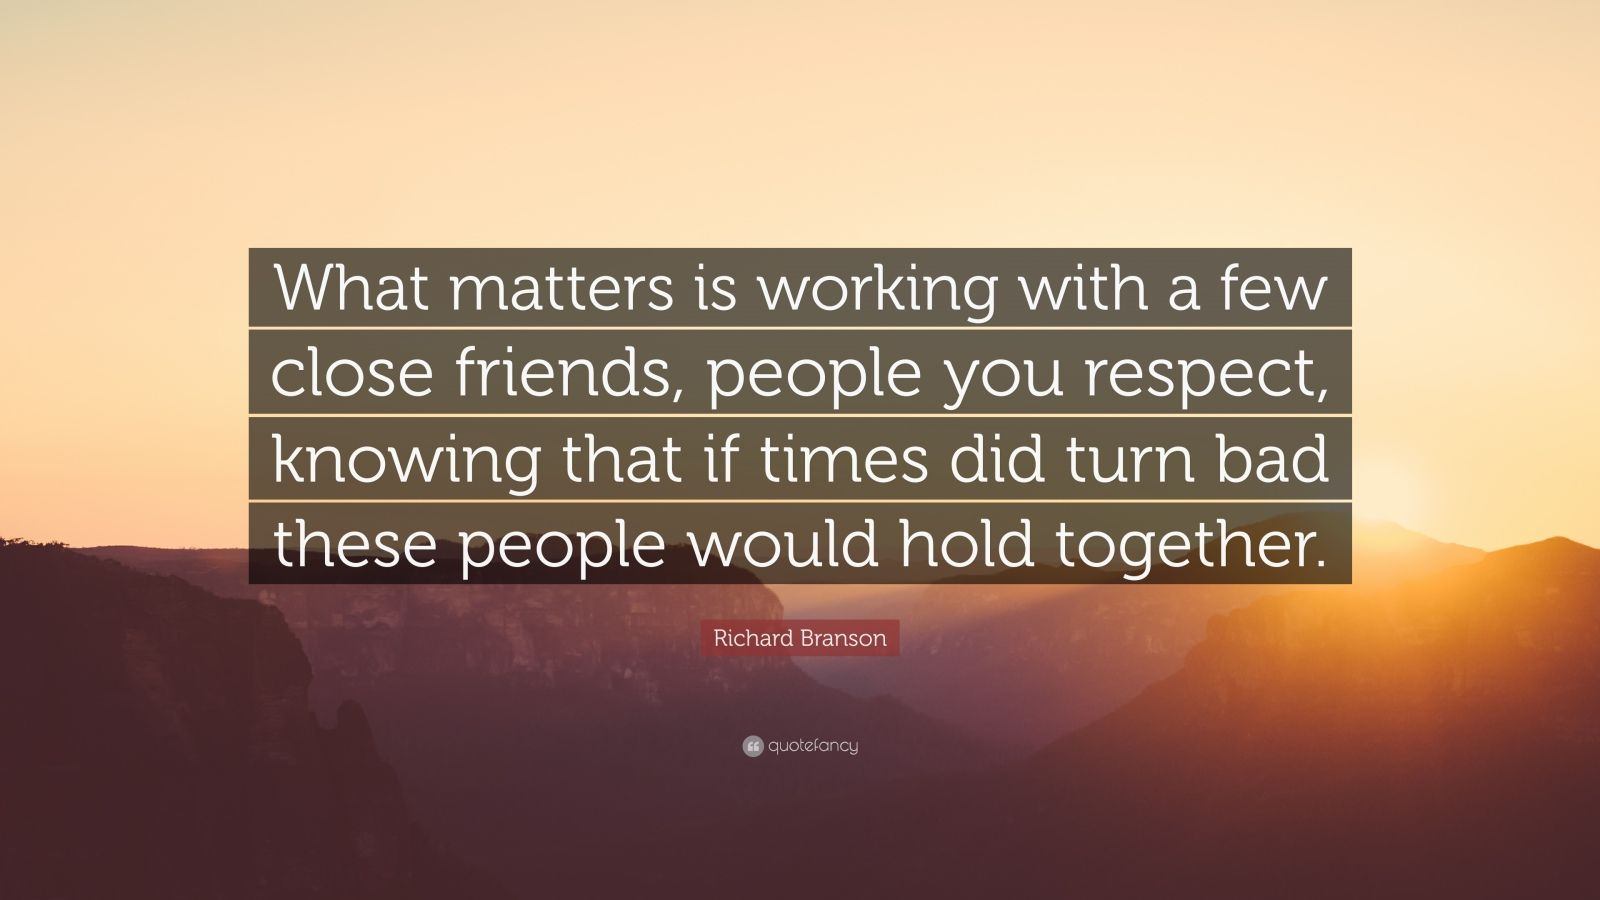 """Richard Branson Quote: """"What matters is working with a few close friends, people you respect, knowing that if times did turn bad these people would hold together."""""""